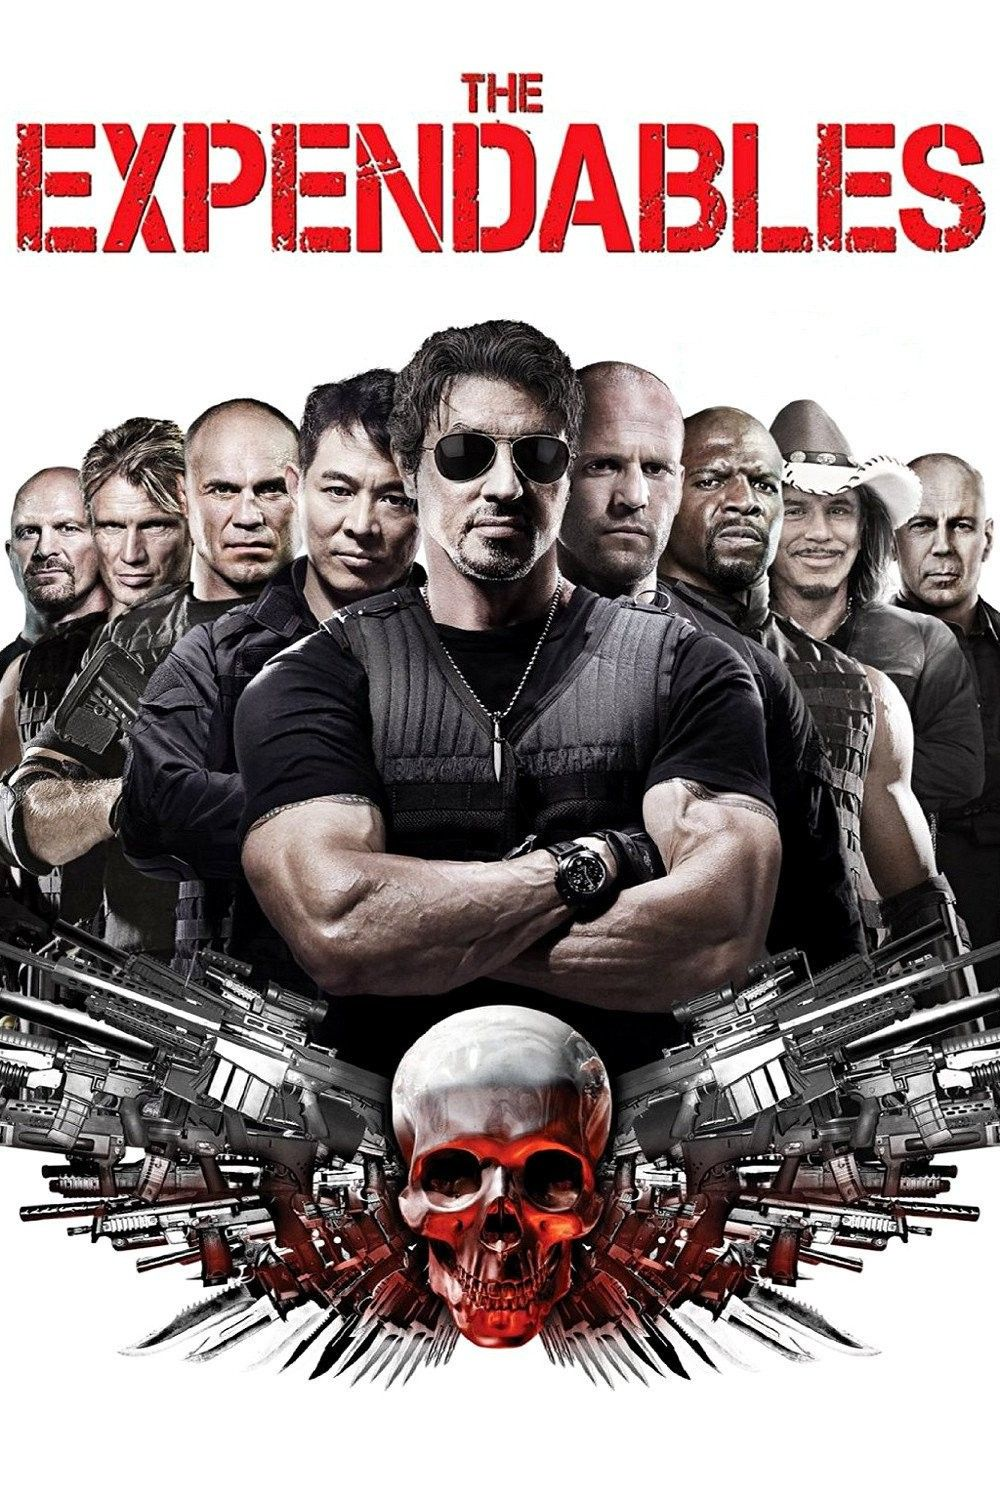 The Expendables Kostenlos Online Anschauen 2010 Hd Full Film Deutsch The Expendables Expendables Movie Sylvester Stallone